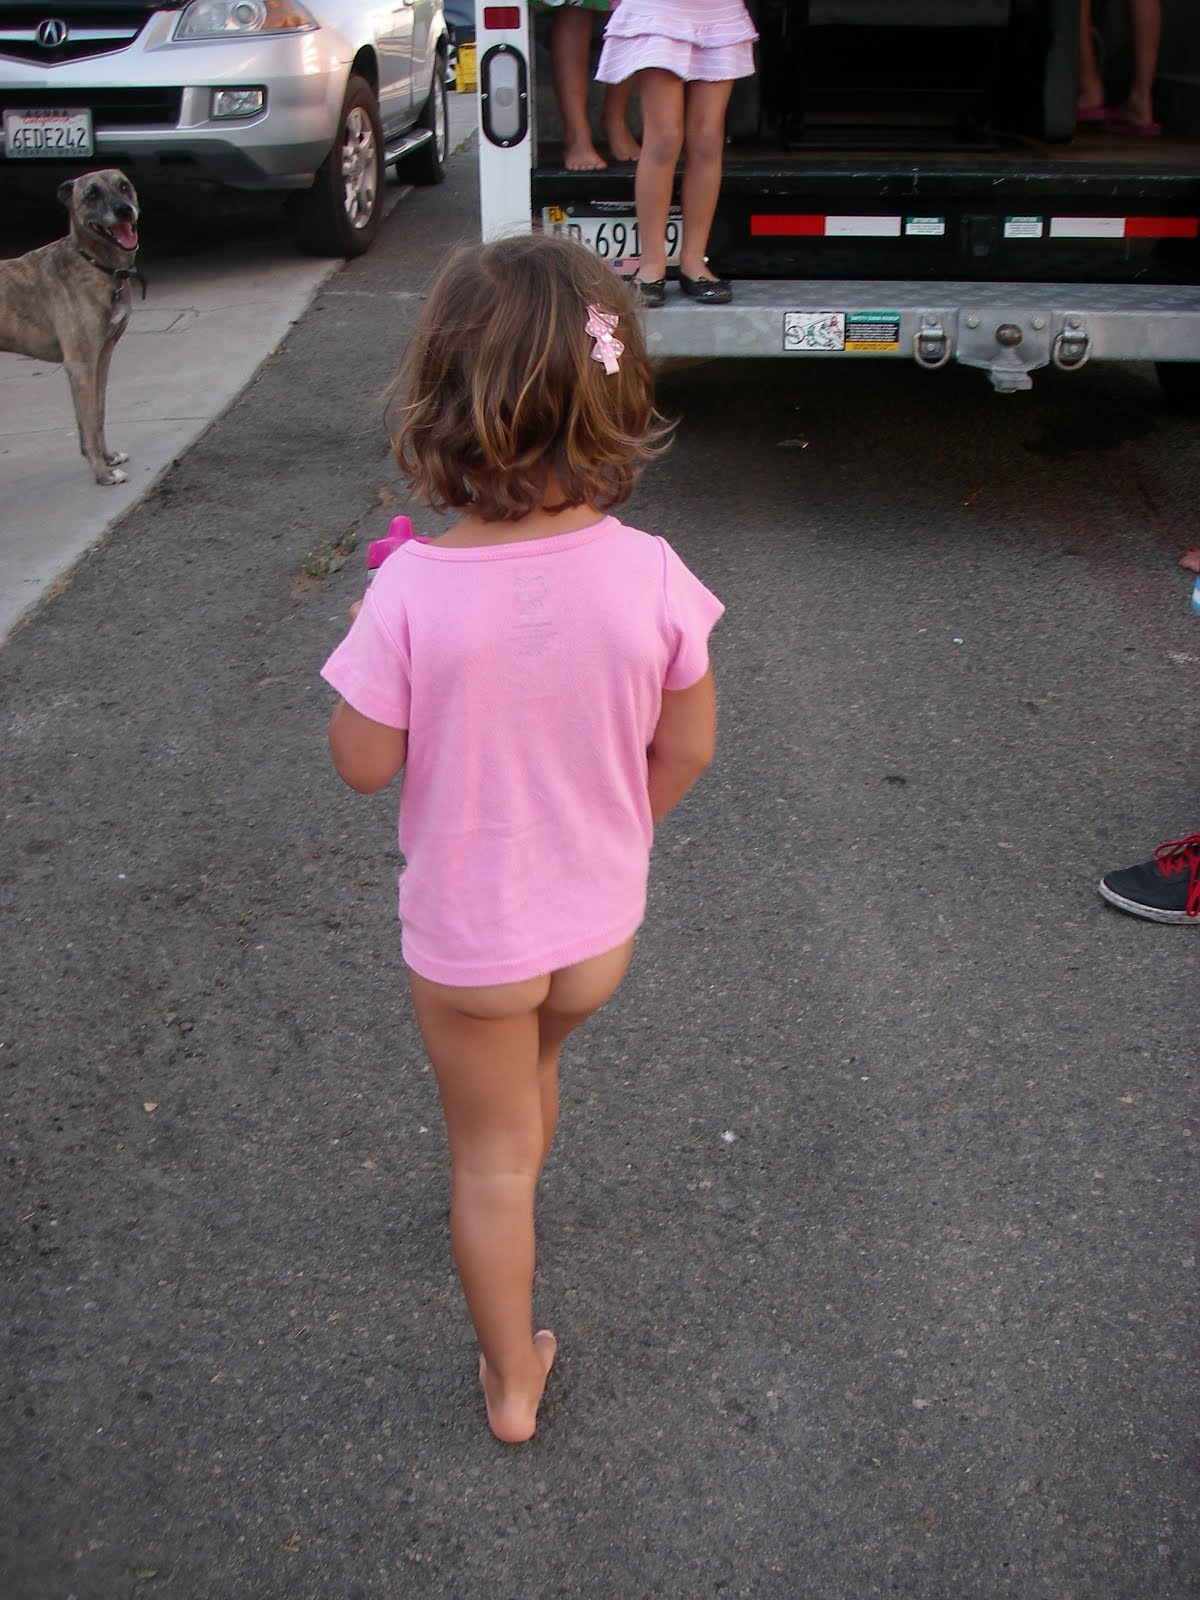 Little girl bare butt — 9